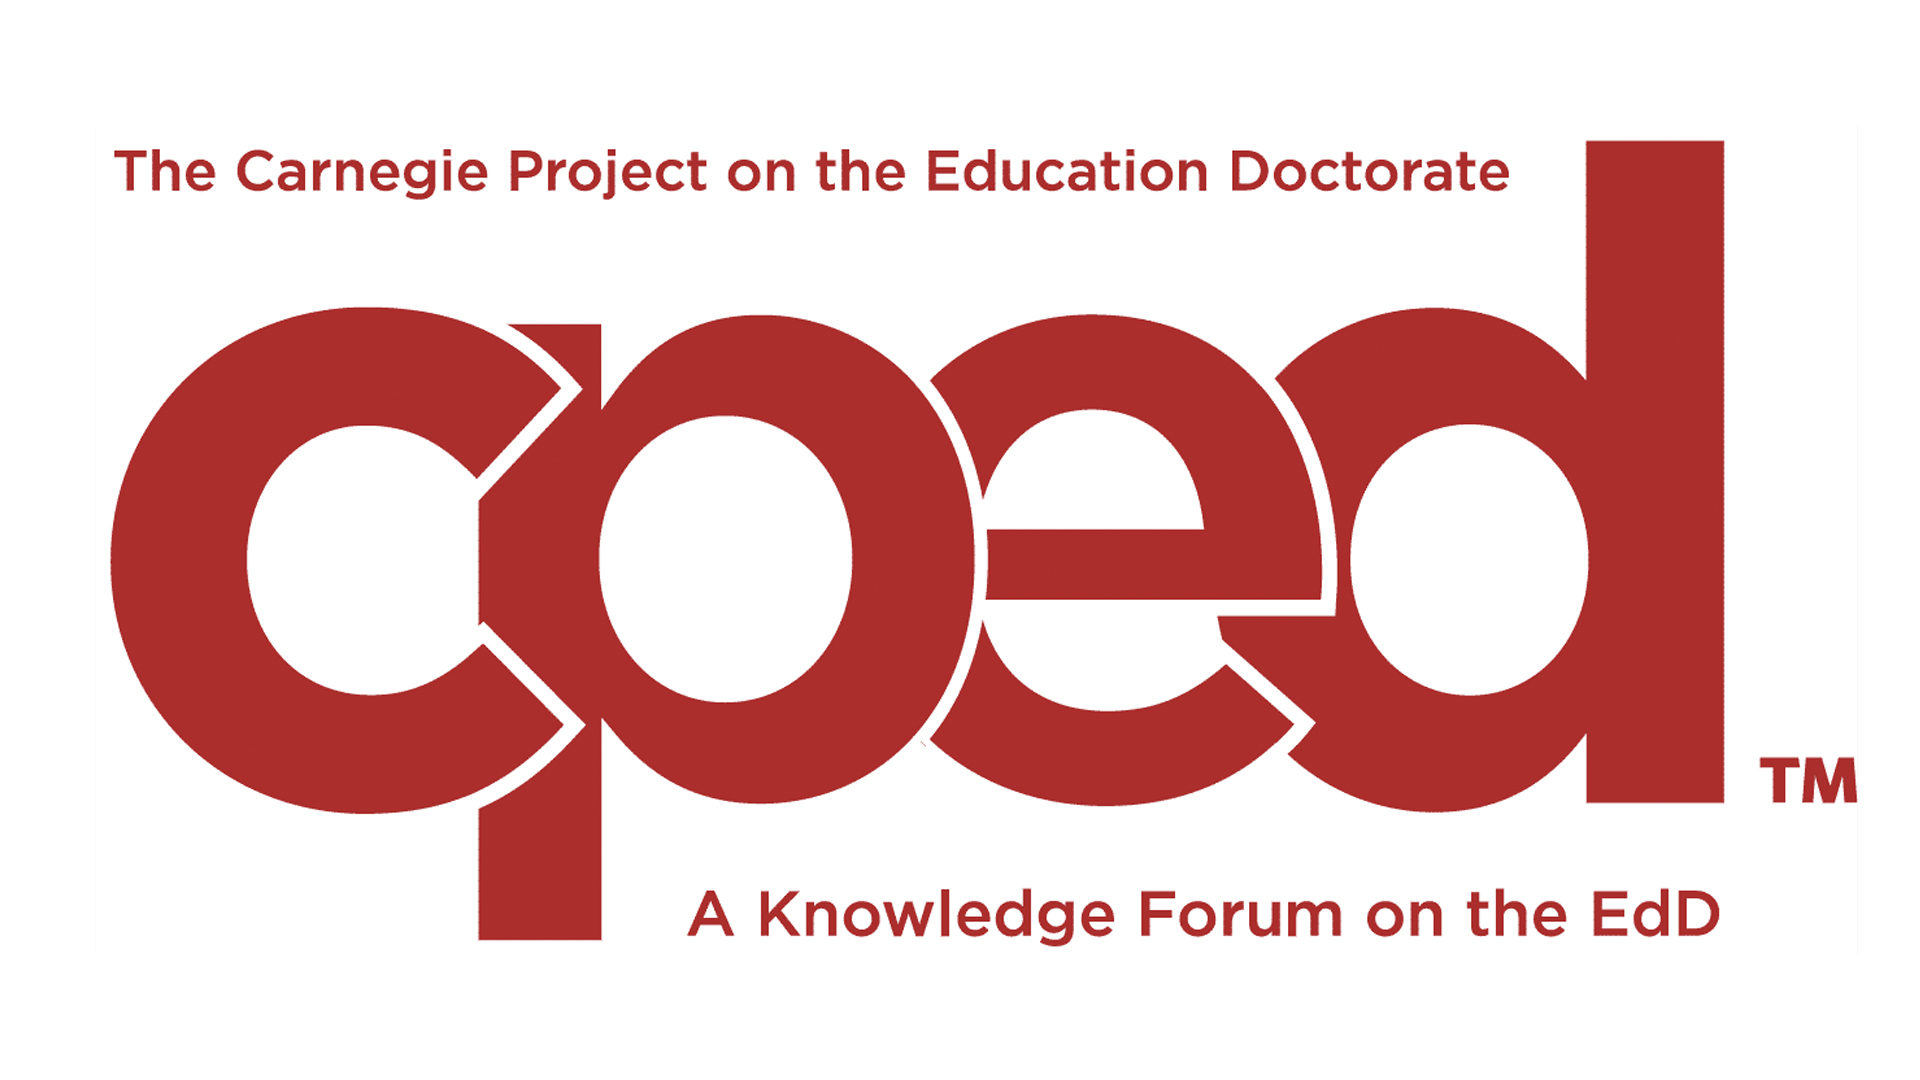 Carnegie Project on the Education Doctorate (CPED)